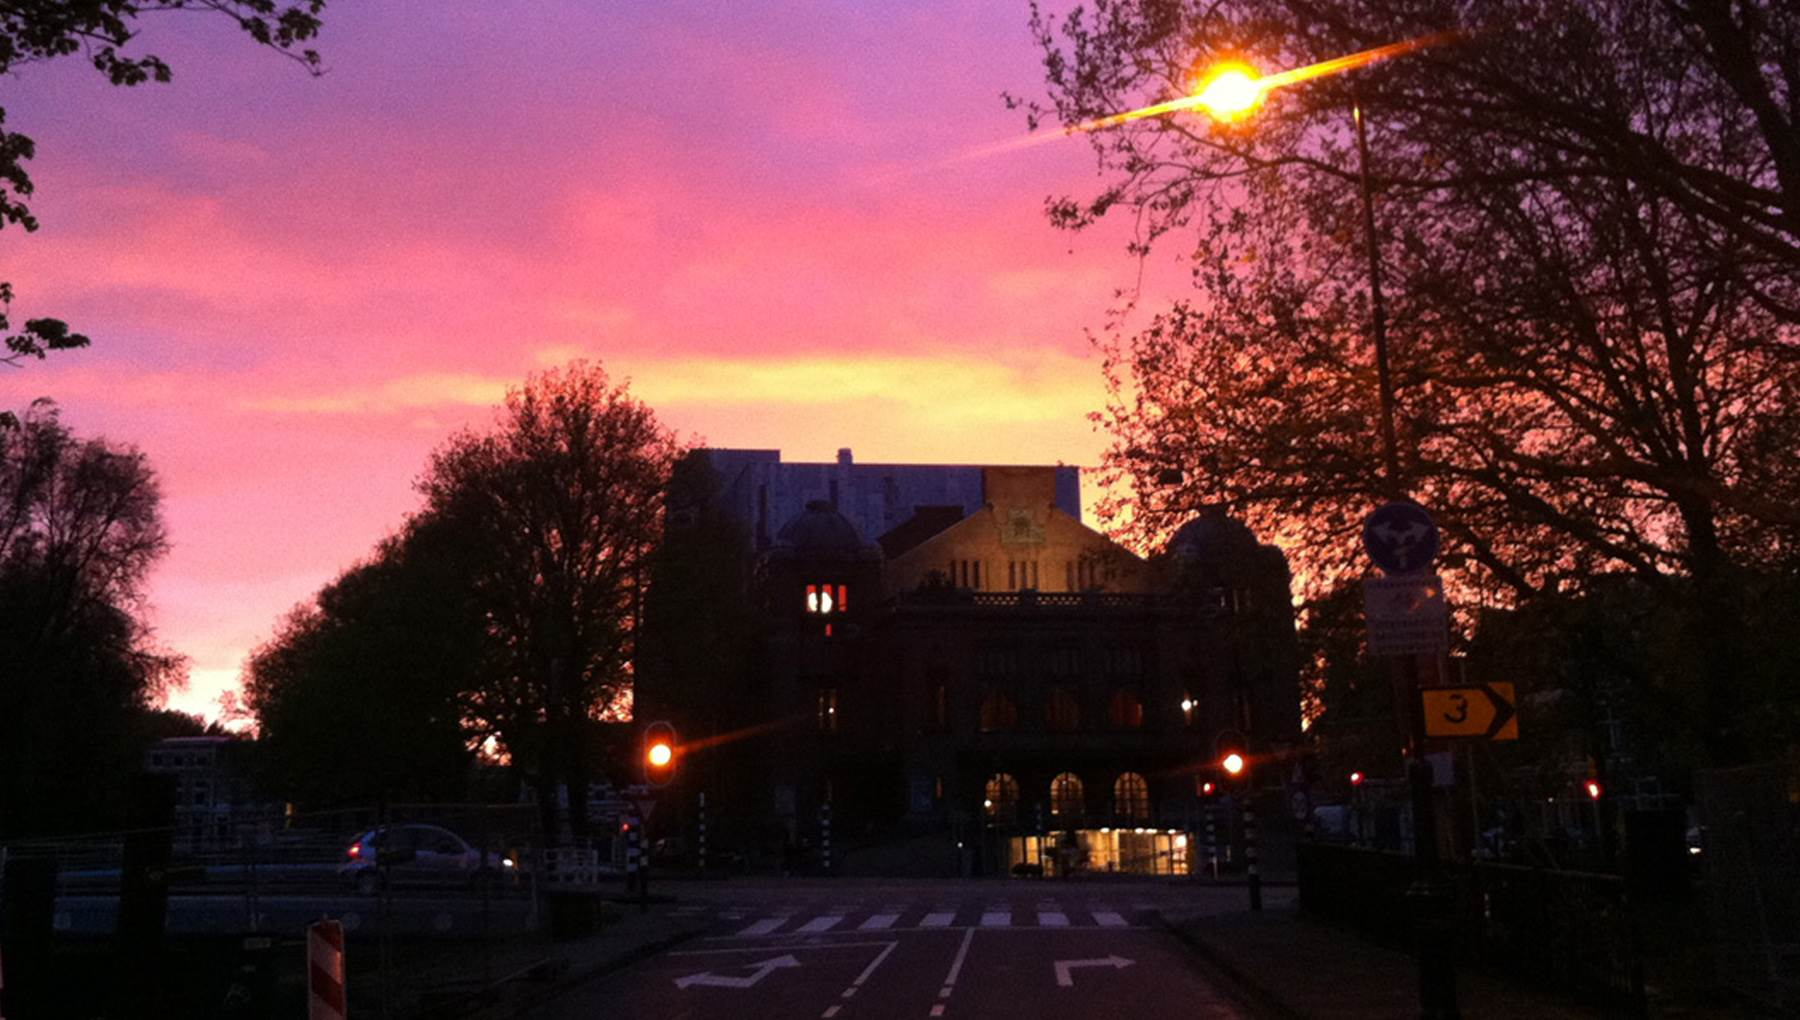 Haarlem schouwburg sunset CC BY 2.0 Daviddje via Flickr